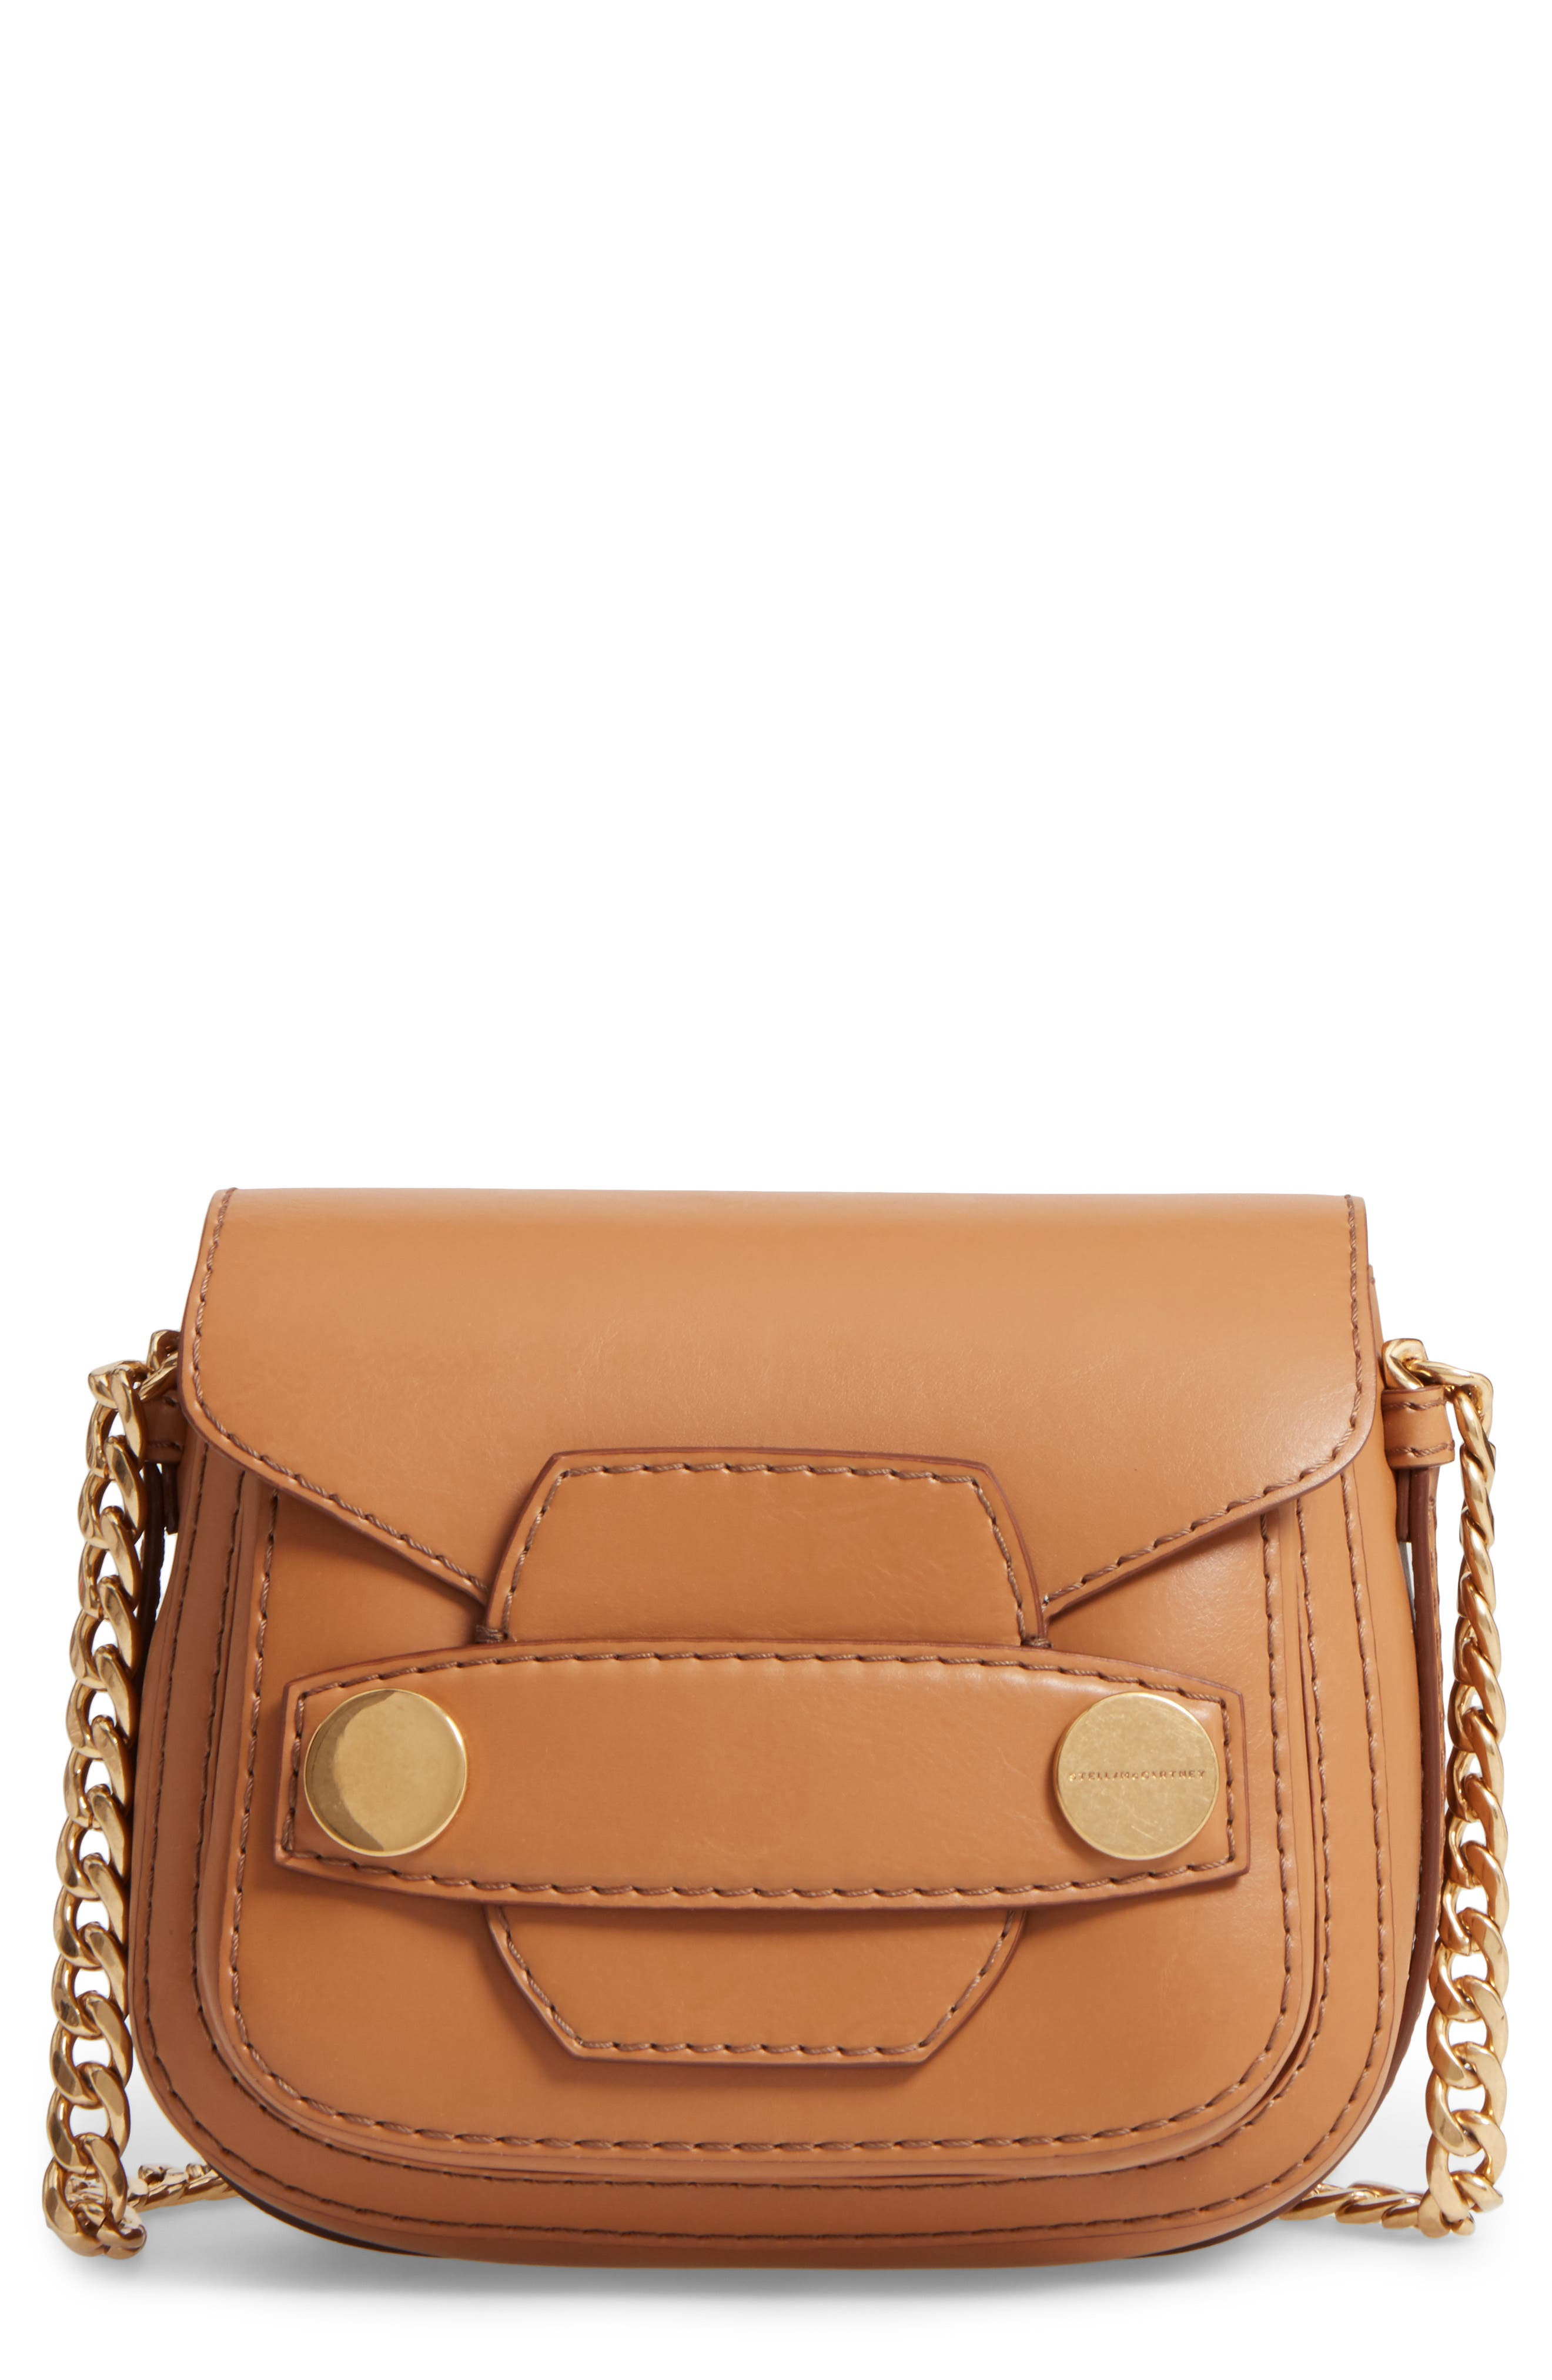 Alternate Image 1 Selected - Stella McCartney Textured Faux Leather Crossbody Bag